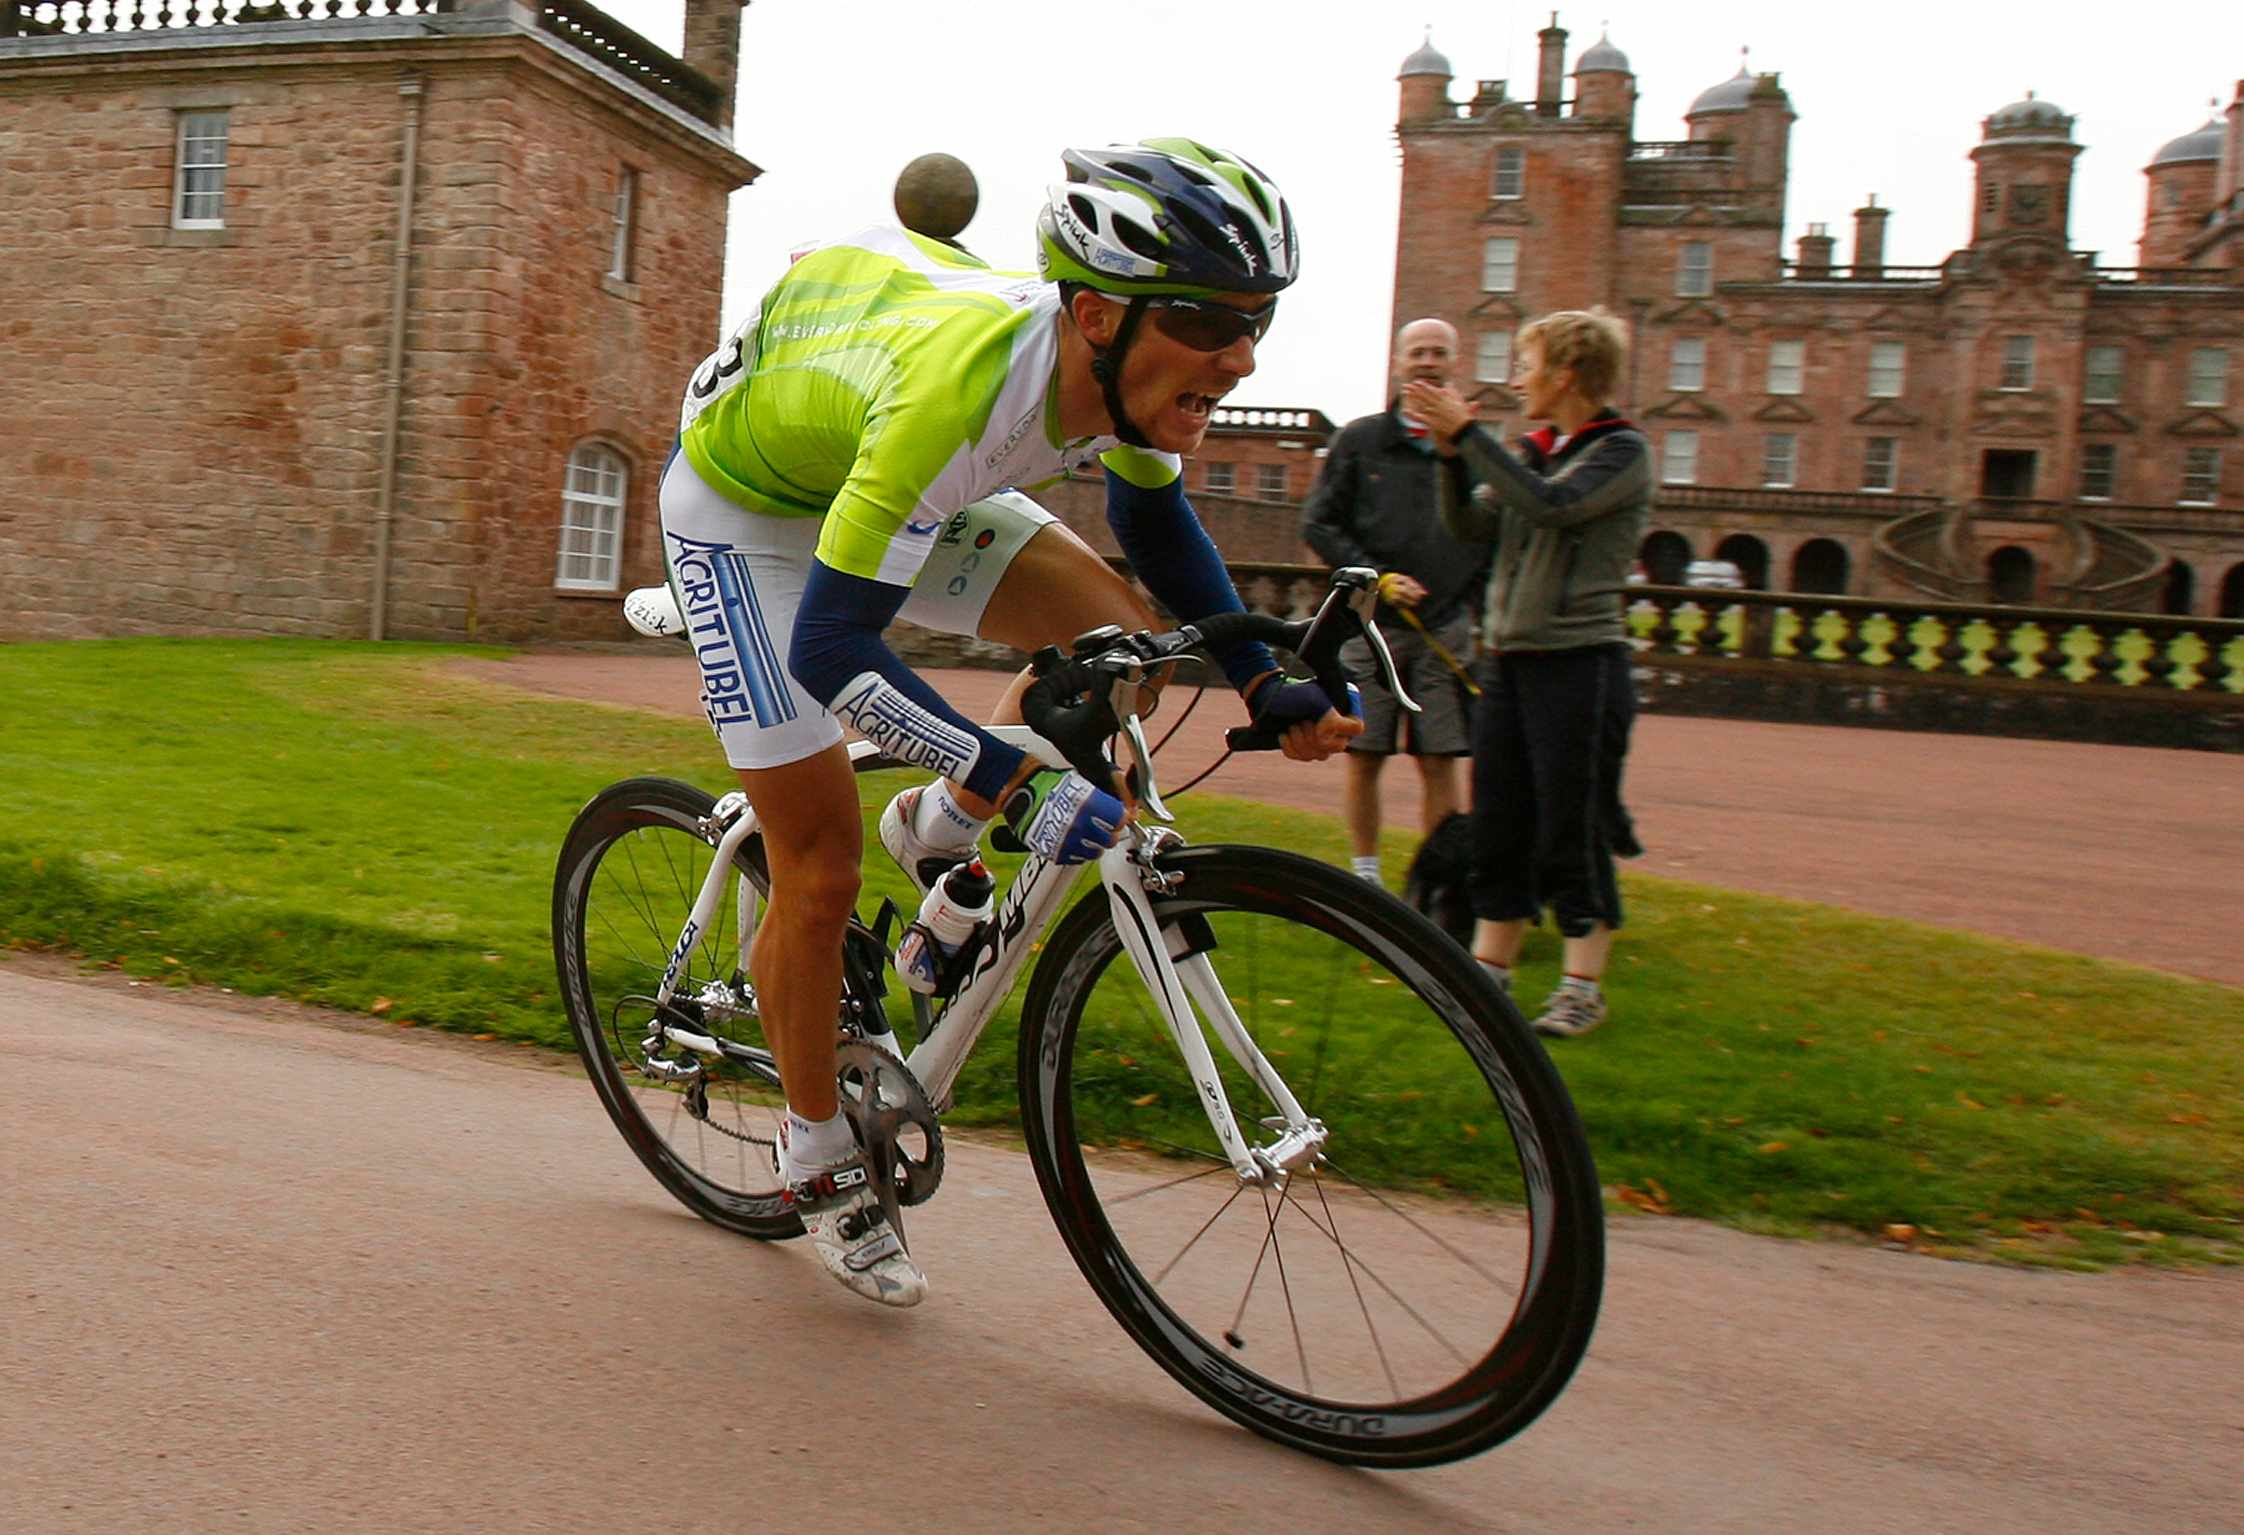 2007 Tour of Britain Champion Romain Feillu passes in front of Drumlanrig Castle